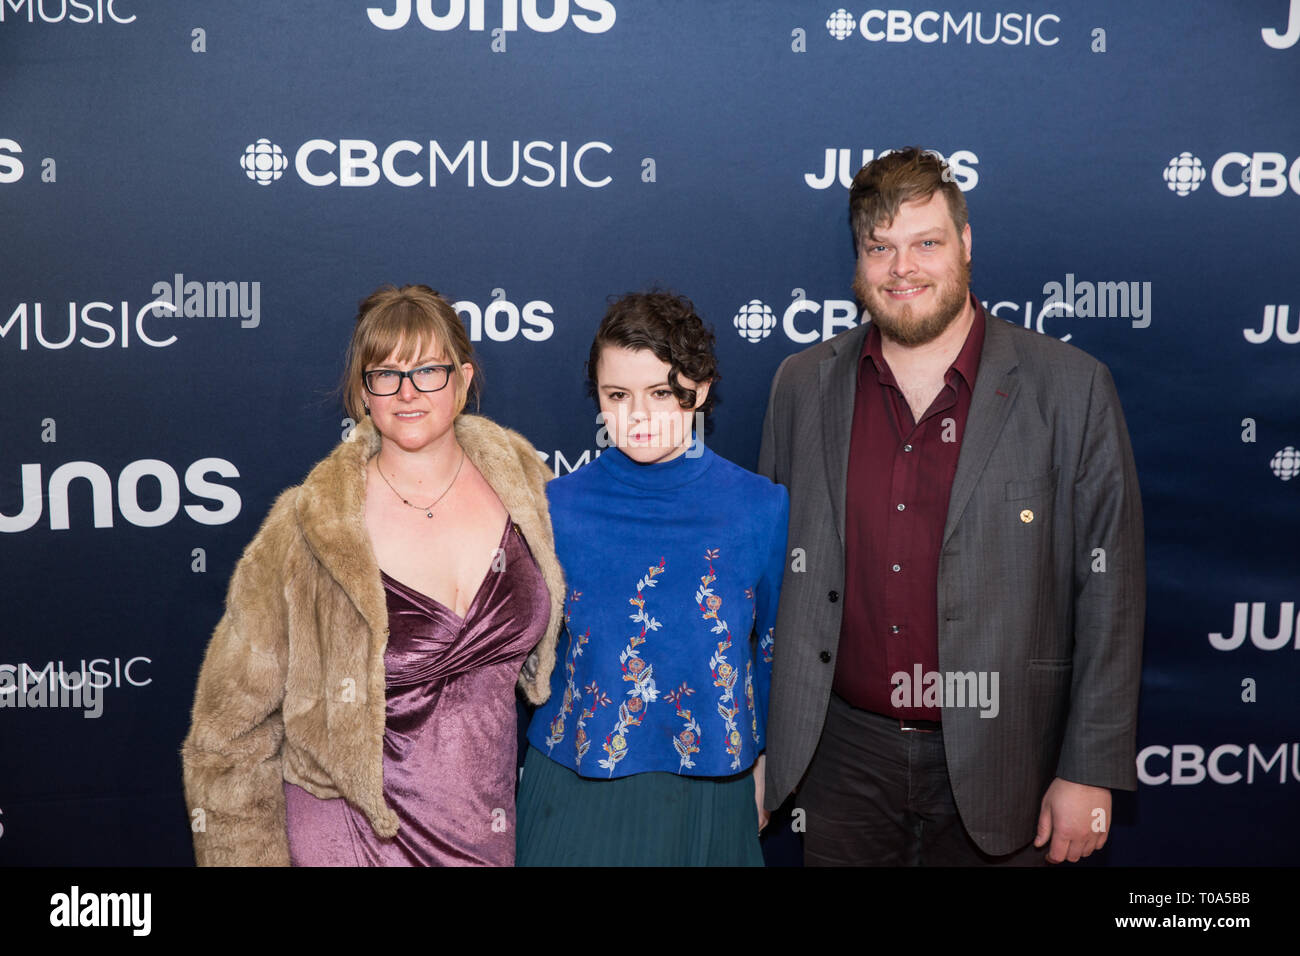 Budweiser Gardens, London, UK. 17th Mar 2019. Instrumental band Aerialists on the 2019 JUNO Awards red carpet at Budweiser Gardens, in London, Ontario, CANADA Credit: topconcertphoto/Alamy Live News - Stock Image